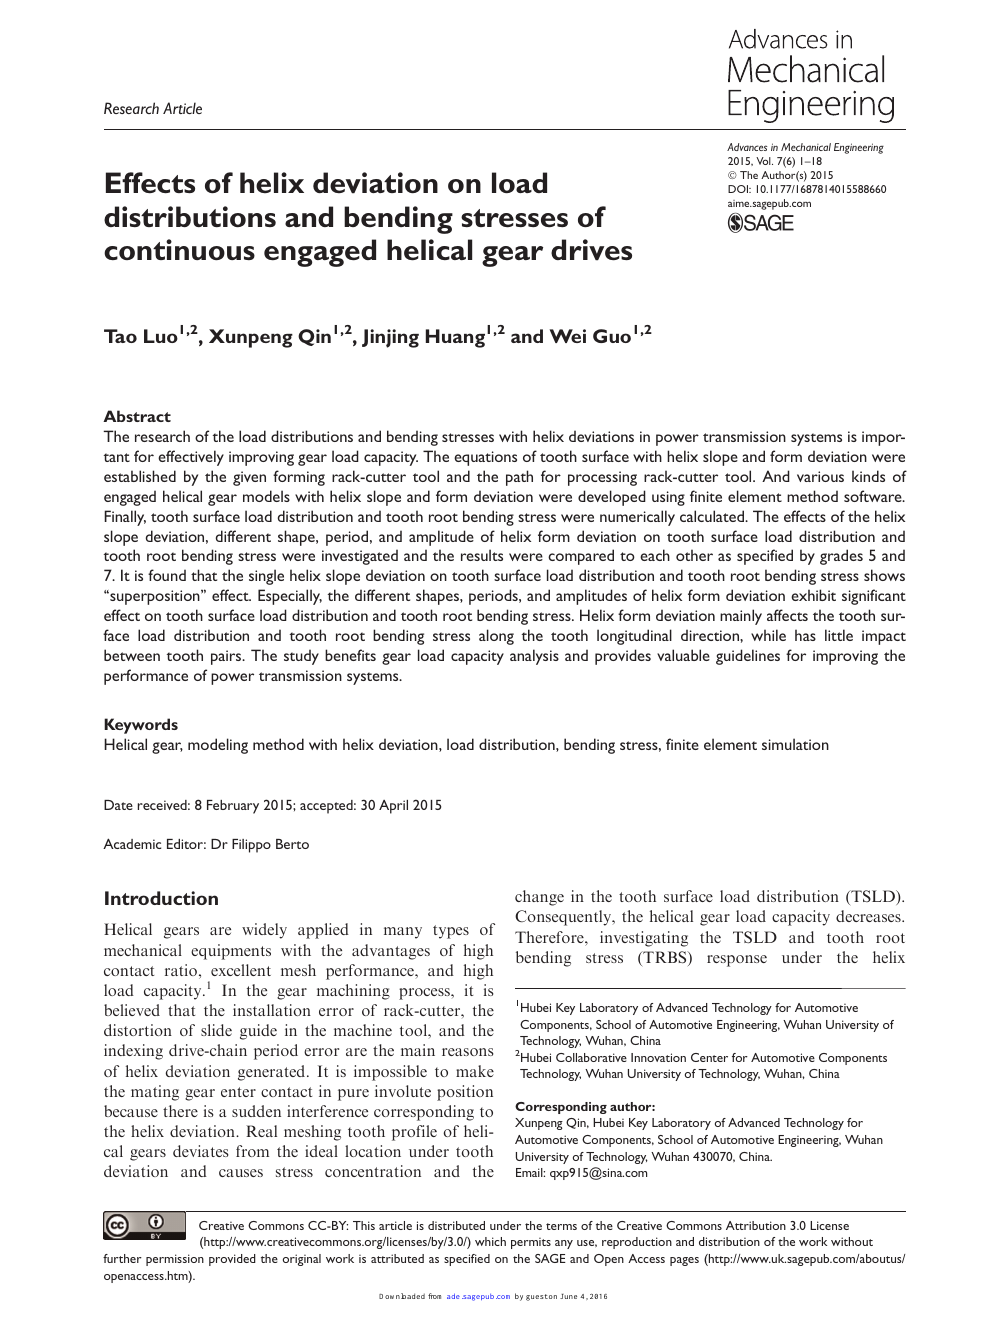 Effects of helix deviation on load distributions and bending